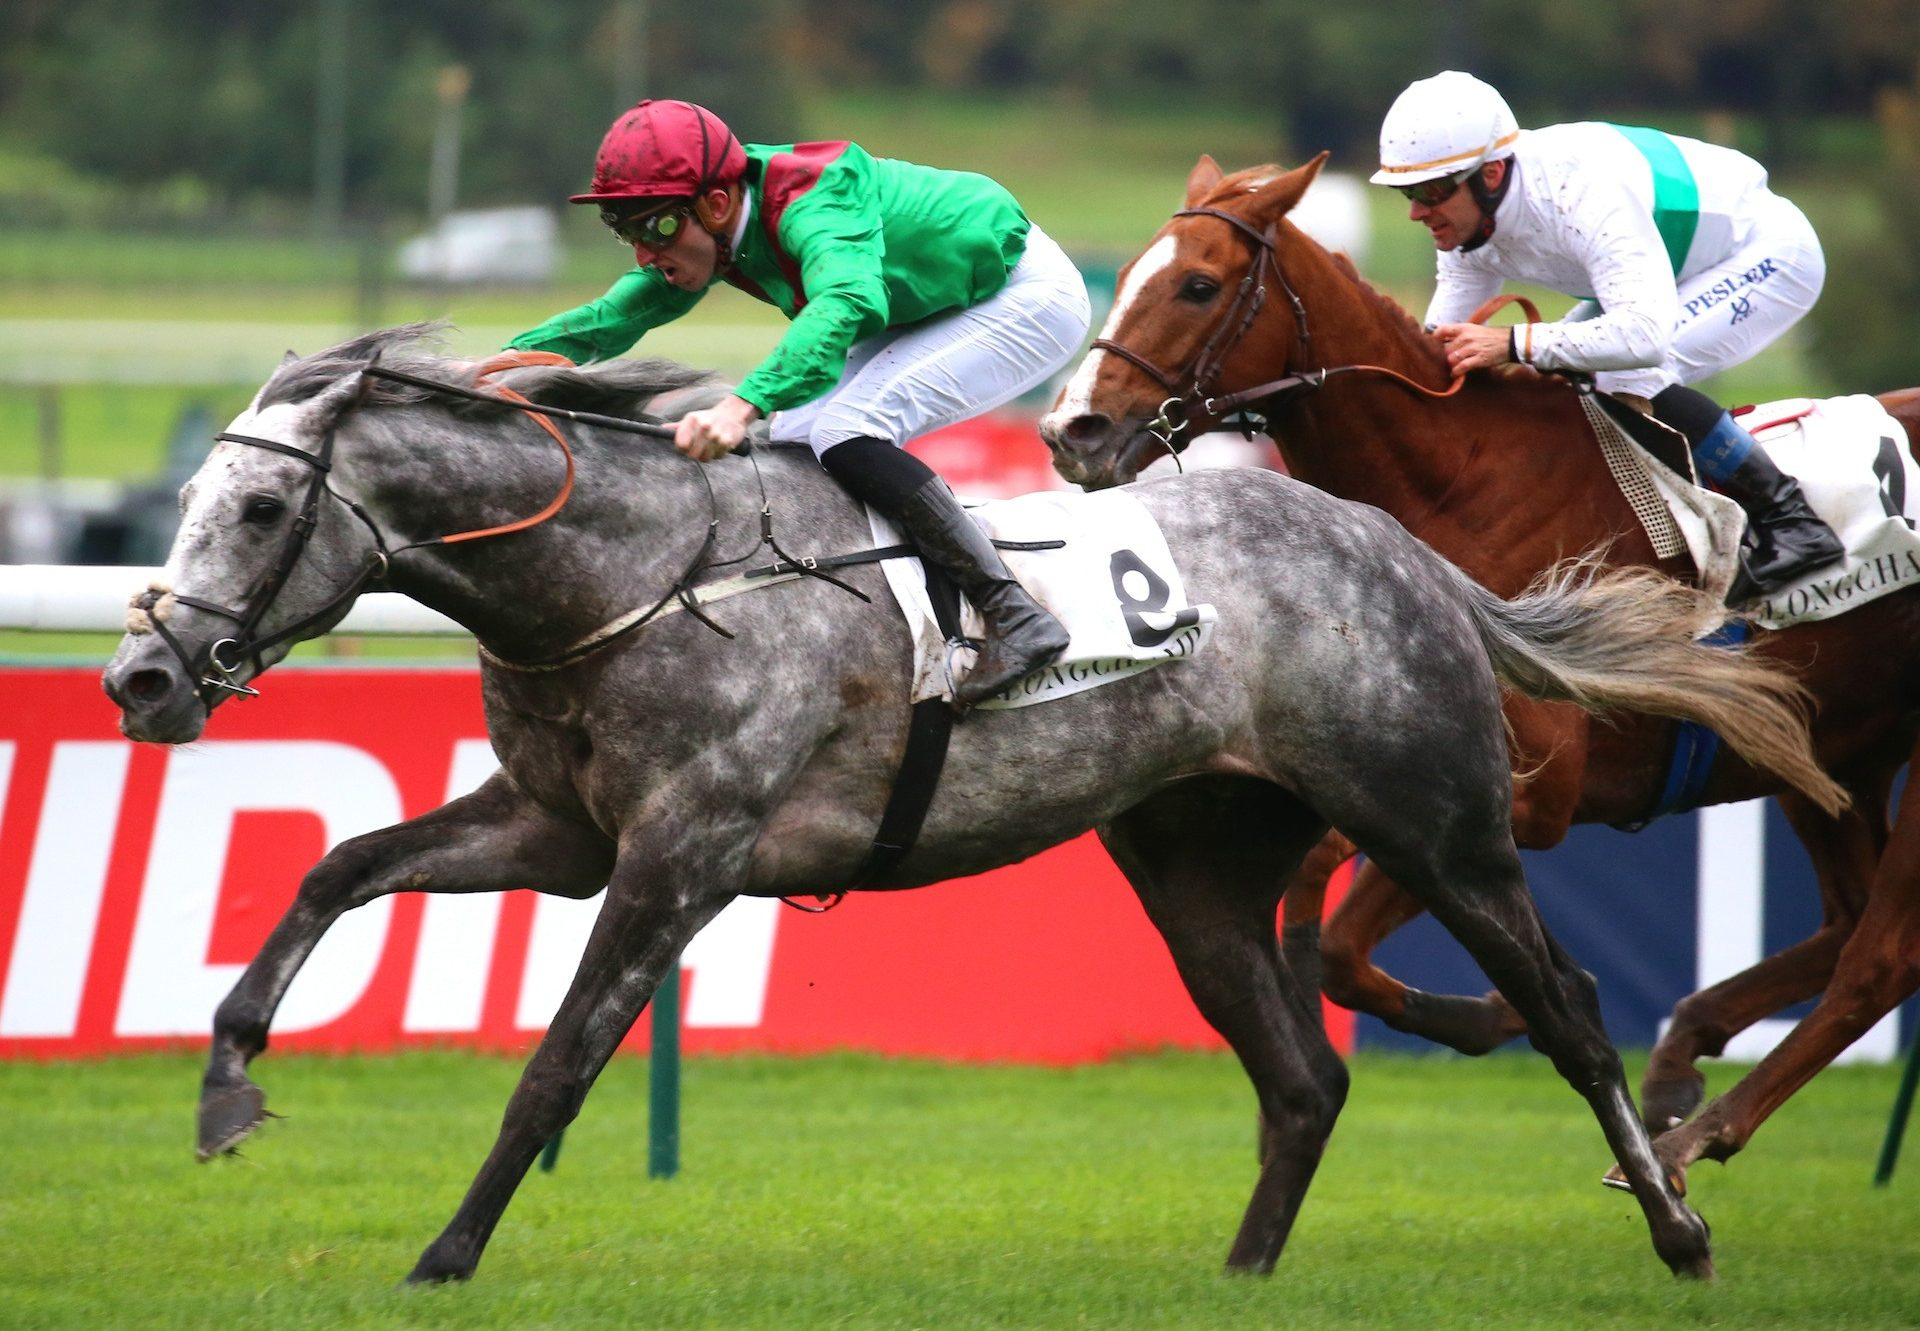 Technician (Mastercraftsman) wins the Gr.1 Prix Royal Oak at Longchamp